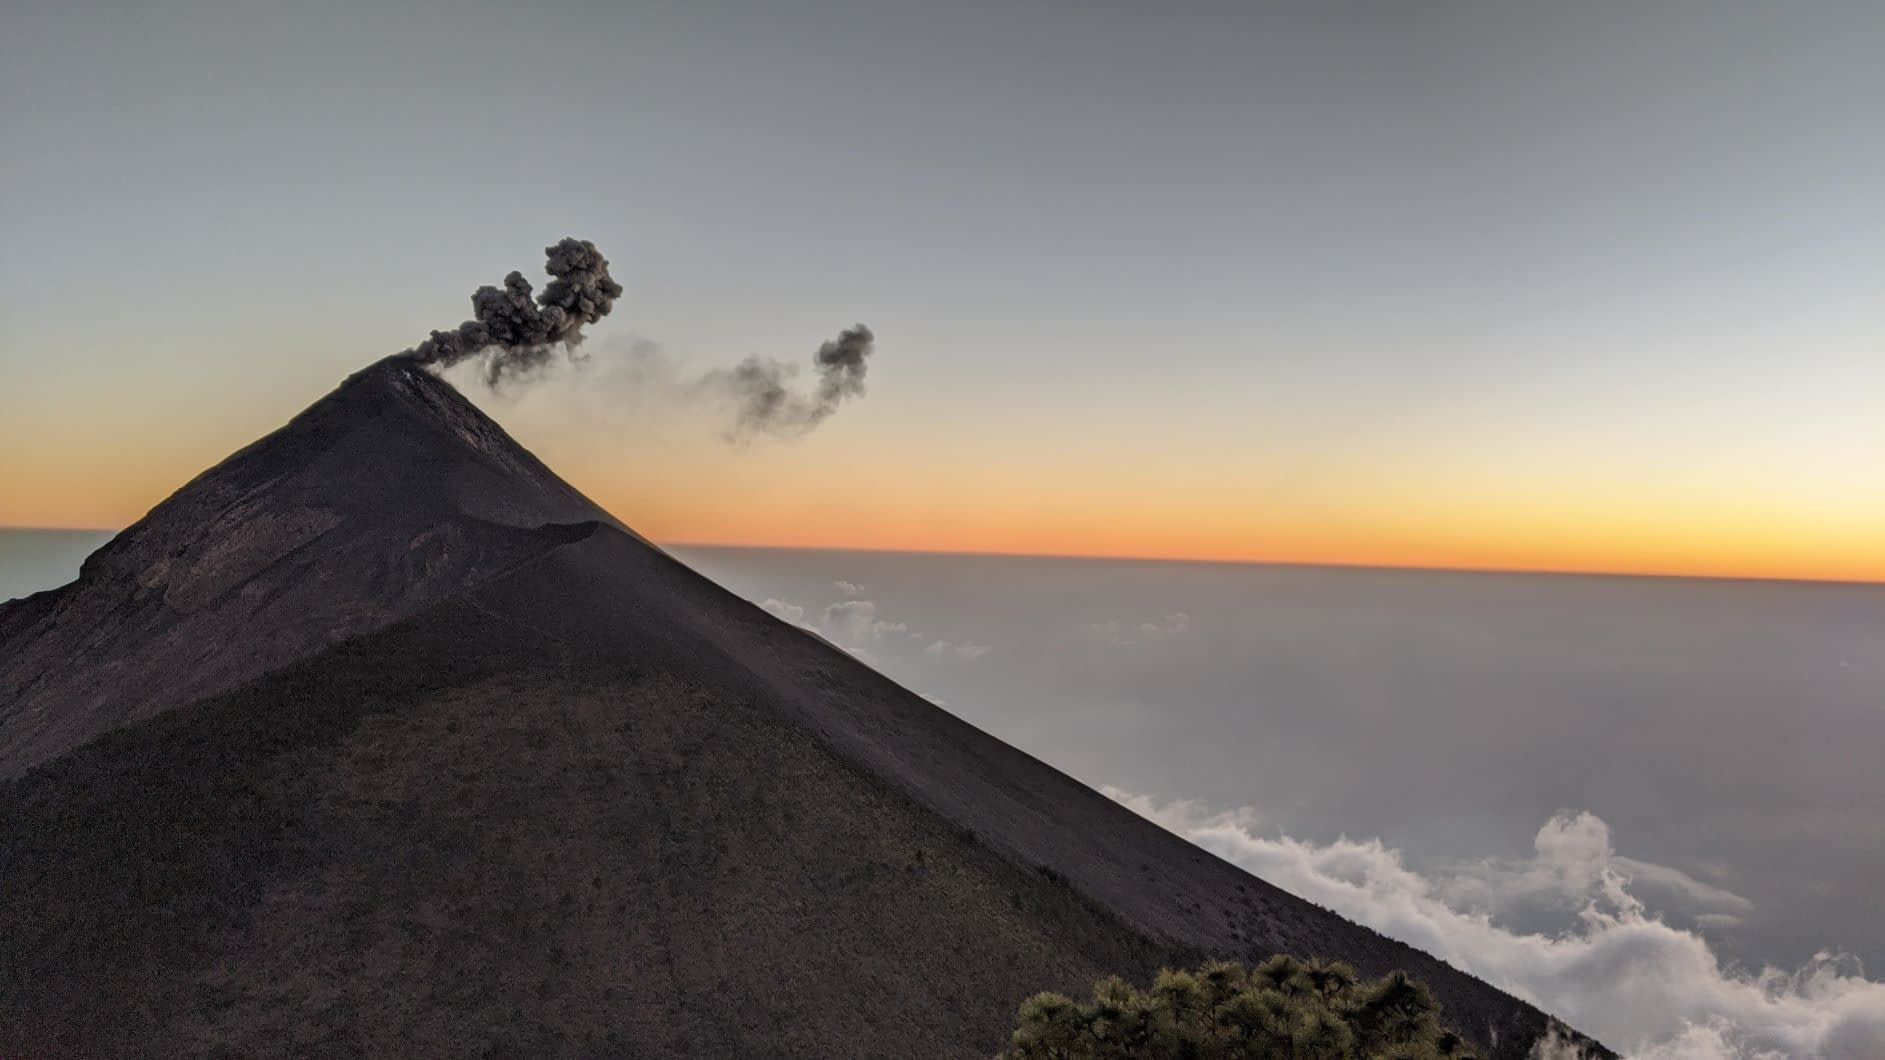 Fuego Volcano spewing ash at sunset